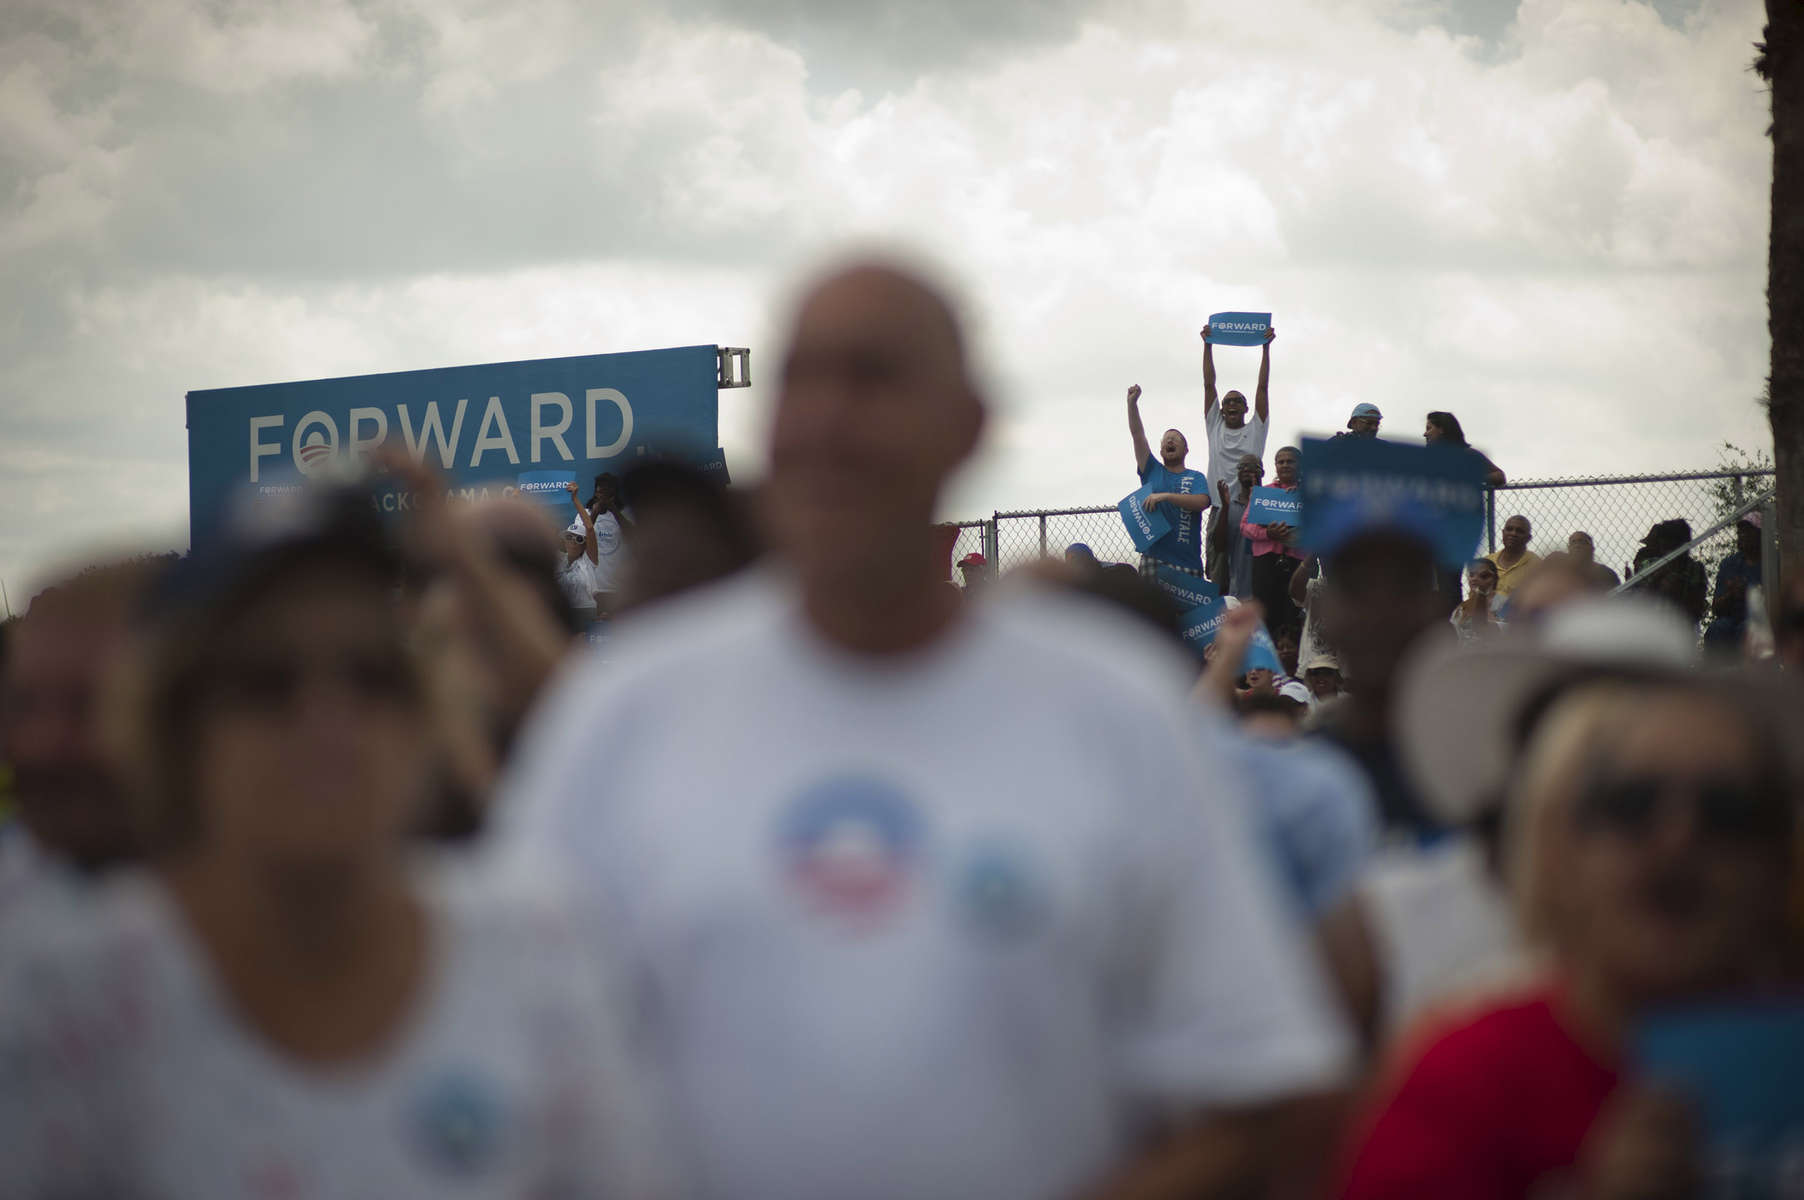 September 8, 2012 - St. Petersburg, FL: Supporters cheer and wave signs as President Barack Obama speaks at a campaign event at St. Petersburg College's Seminole Campus. (Scout Tufankjian for Obama for America/Polaris)